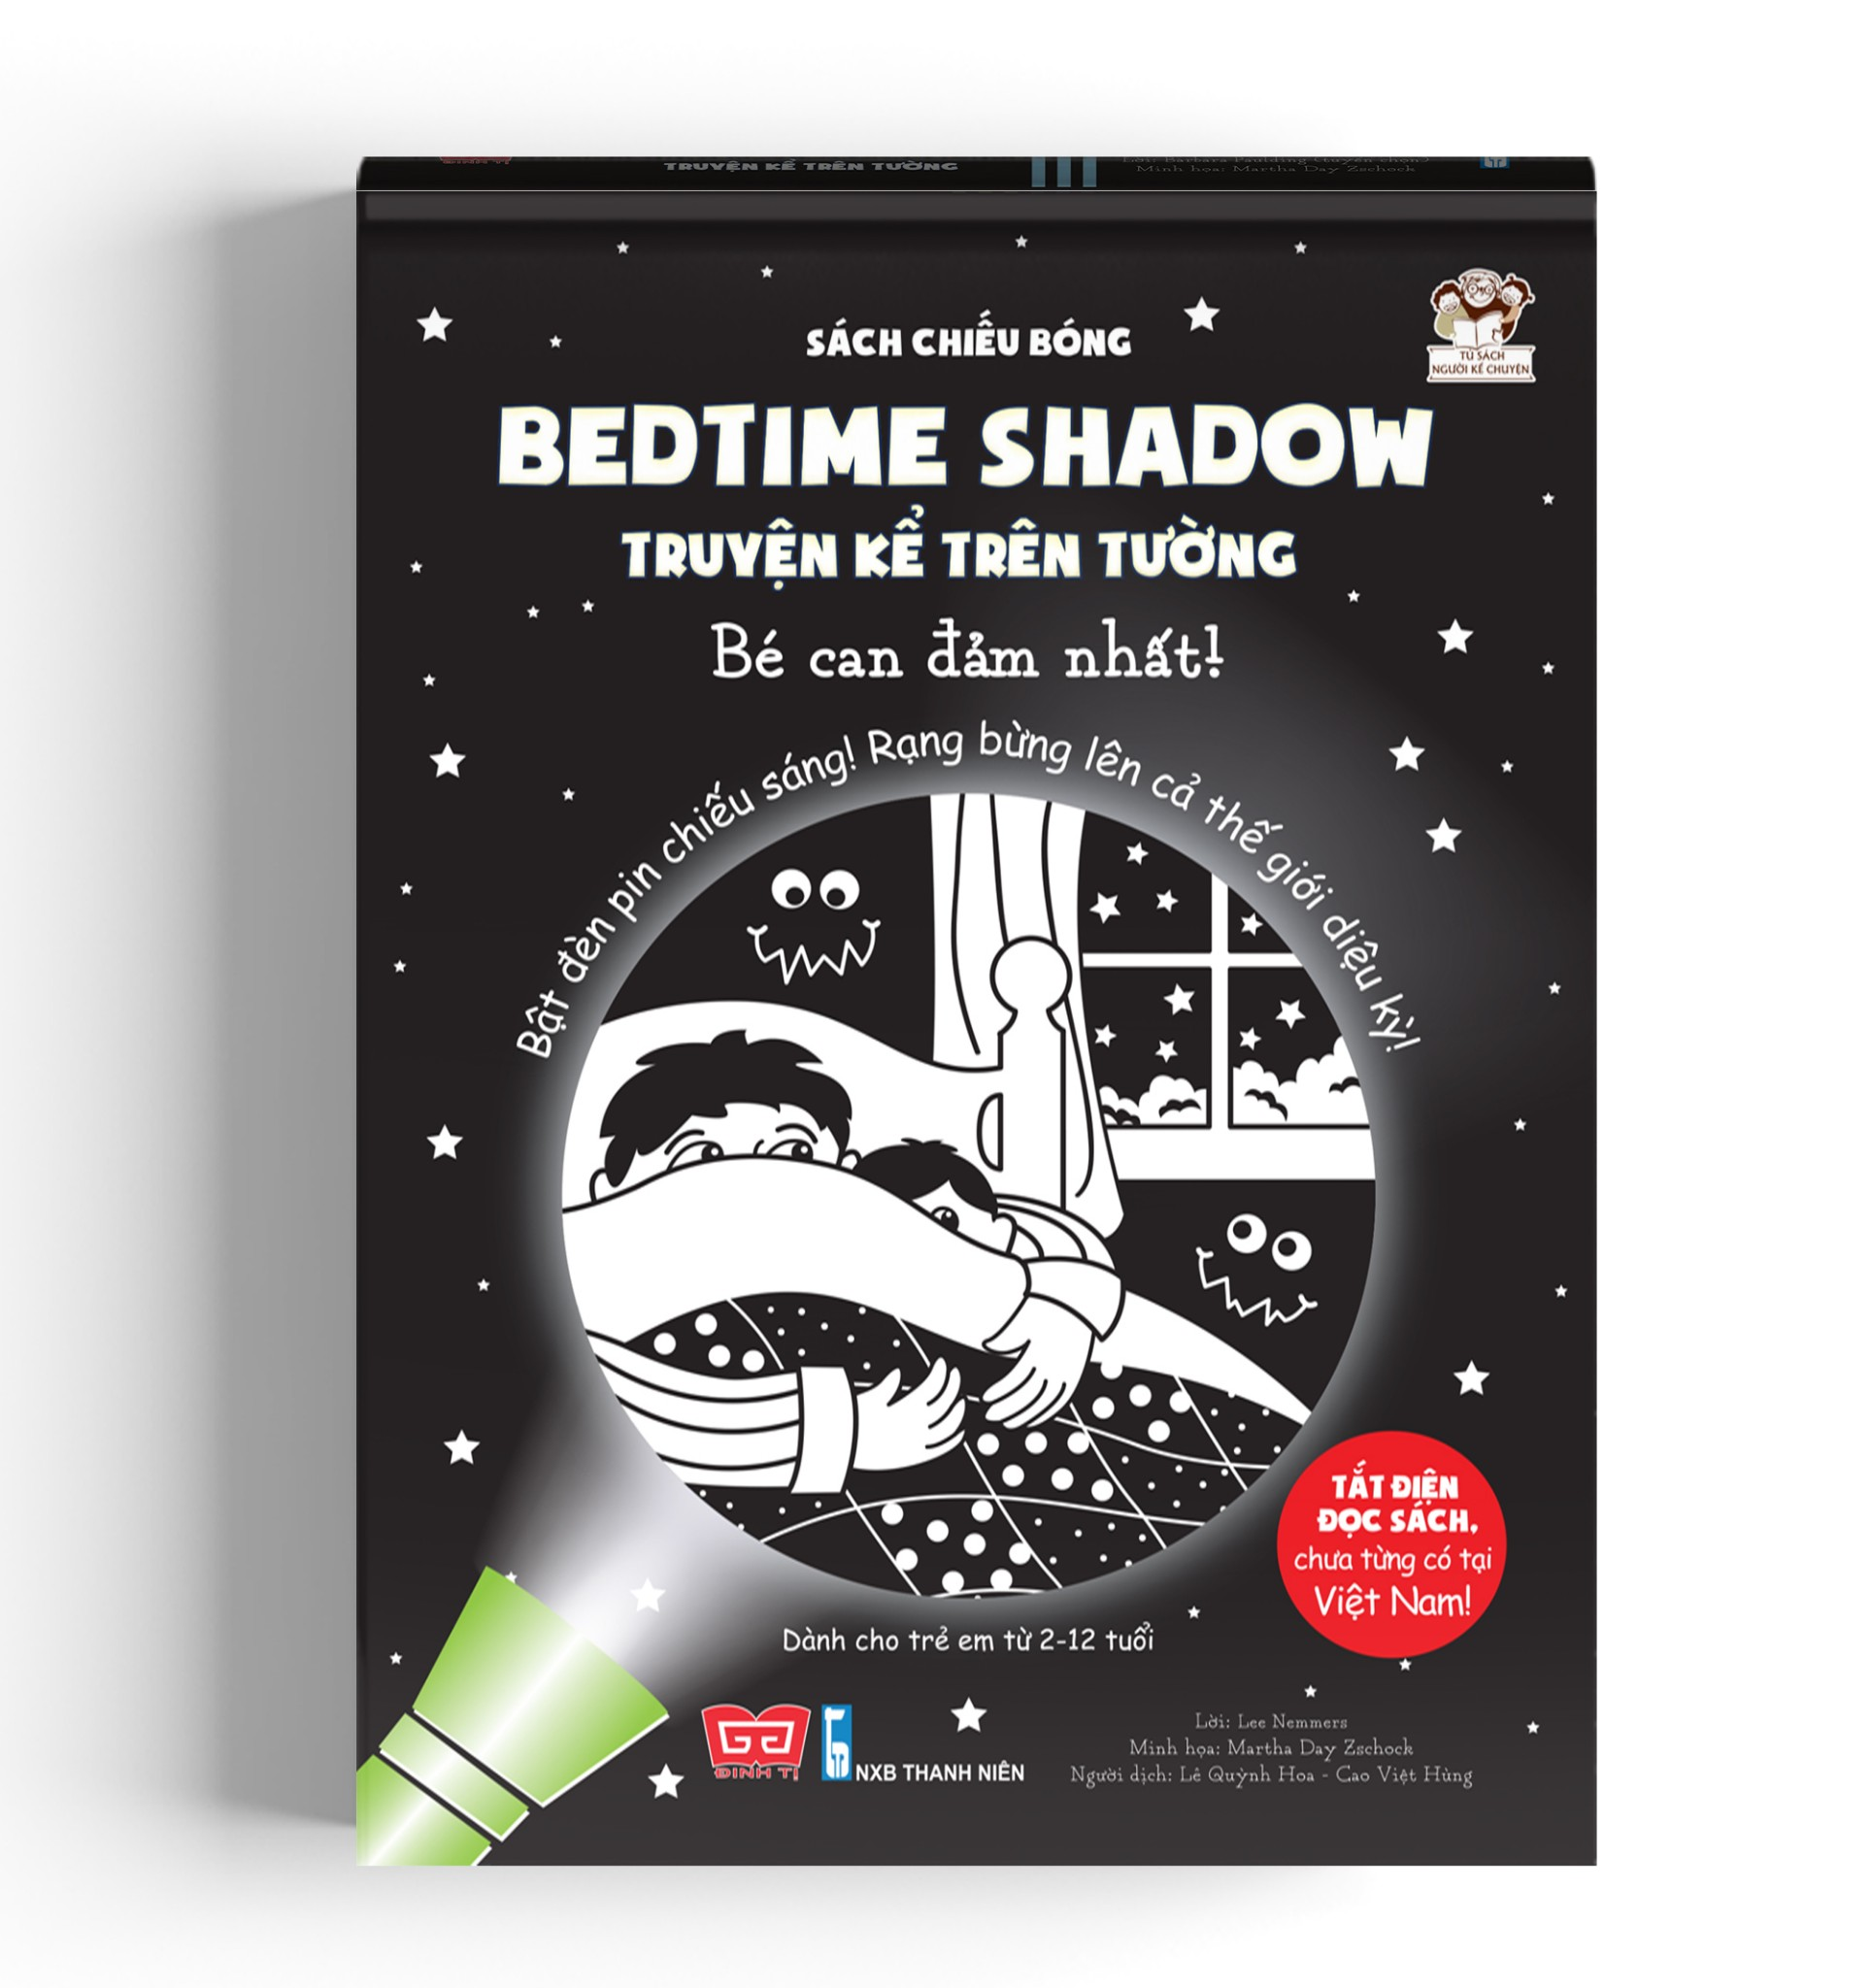 Sách tương tác - Sách chiếu bóng - Bedtime shadow – Truyện kể trên tường - Bé can đảm nhất!